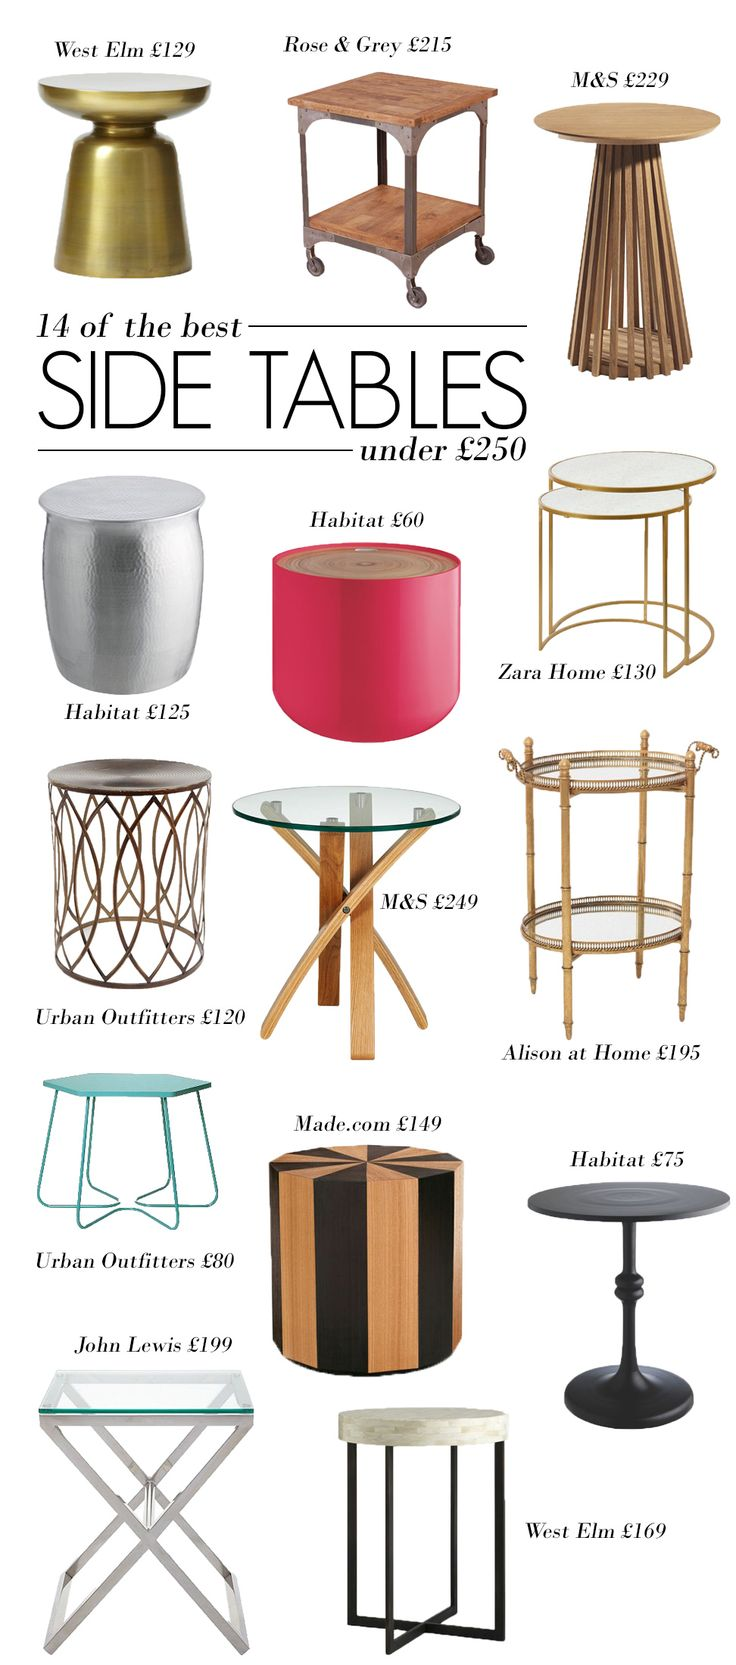 14 Of The Best Side Tables (Under £250)